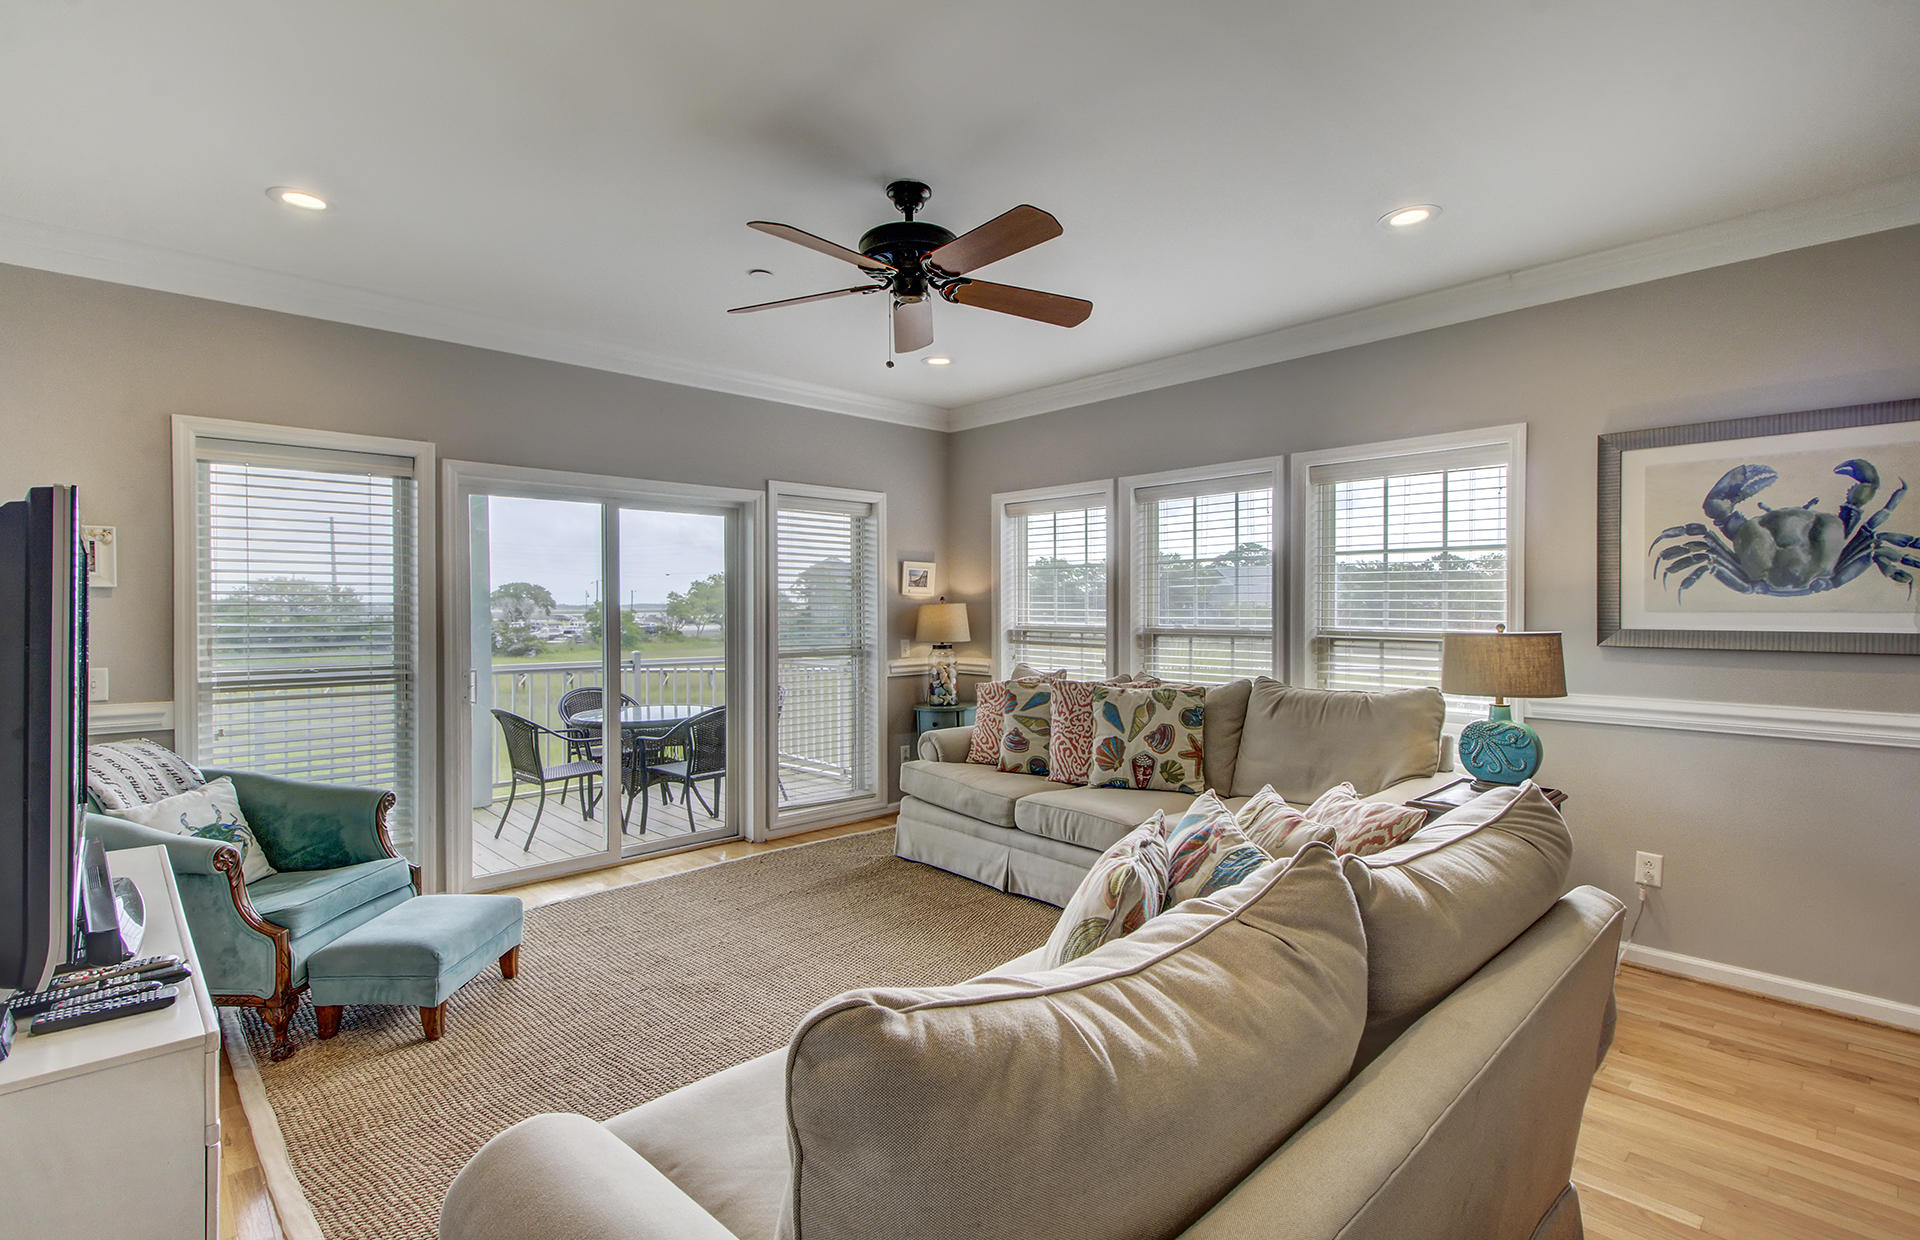 Waters Edge Homes For Sale - 80 2nd, Folly Beach, SC - 11